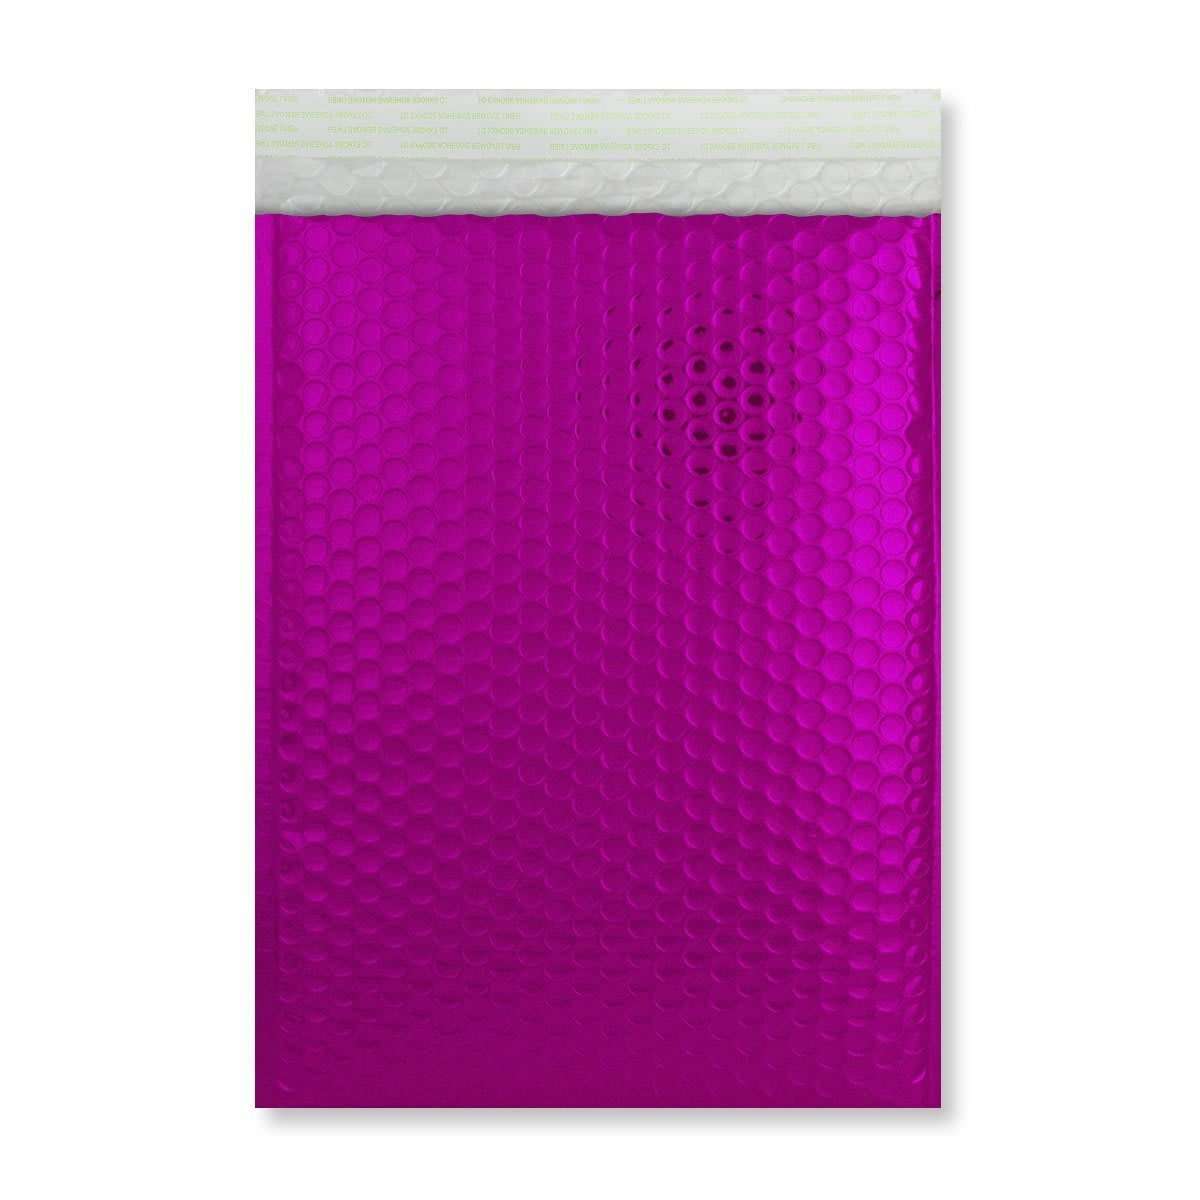 C4 GLOSS METALLIC HOT PINK PADDED ENVELOPES (324 x 230MM)